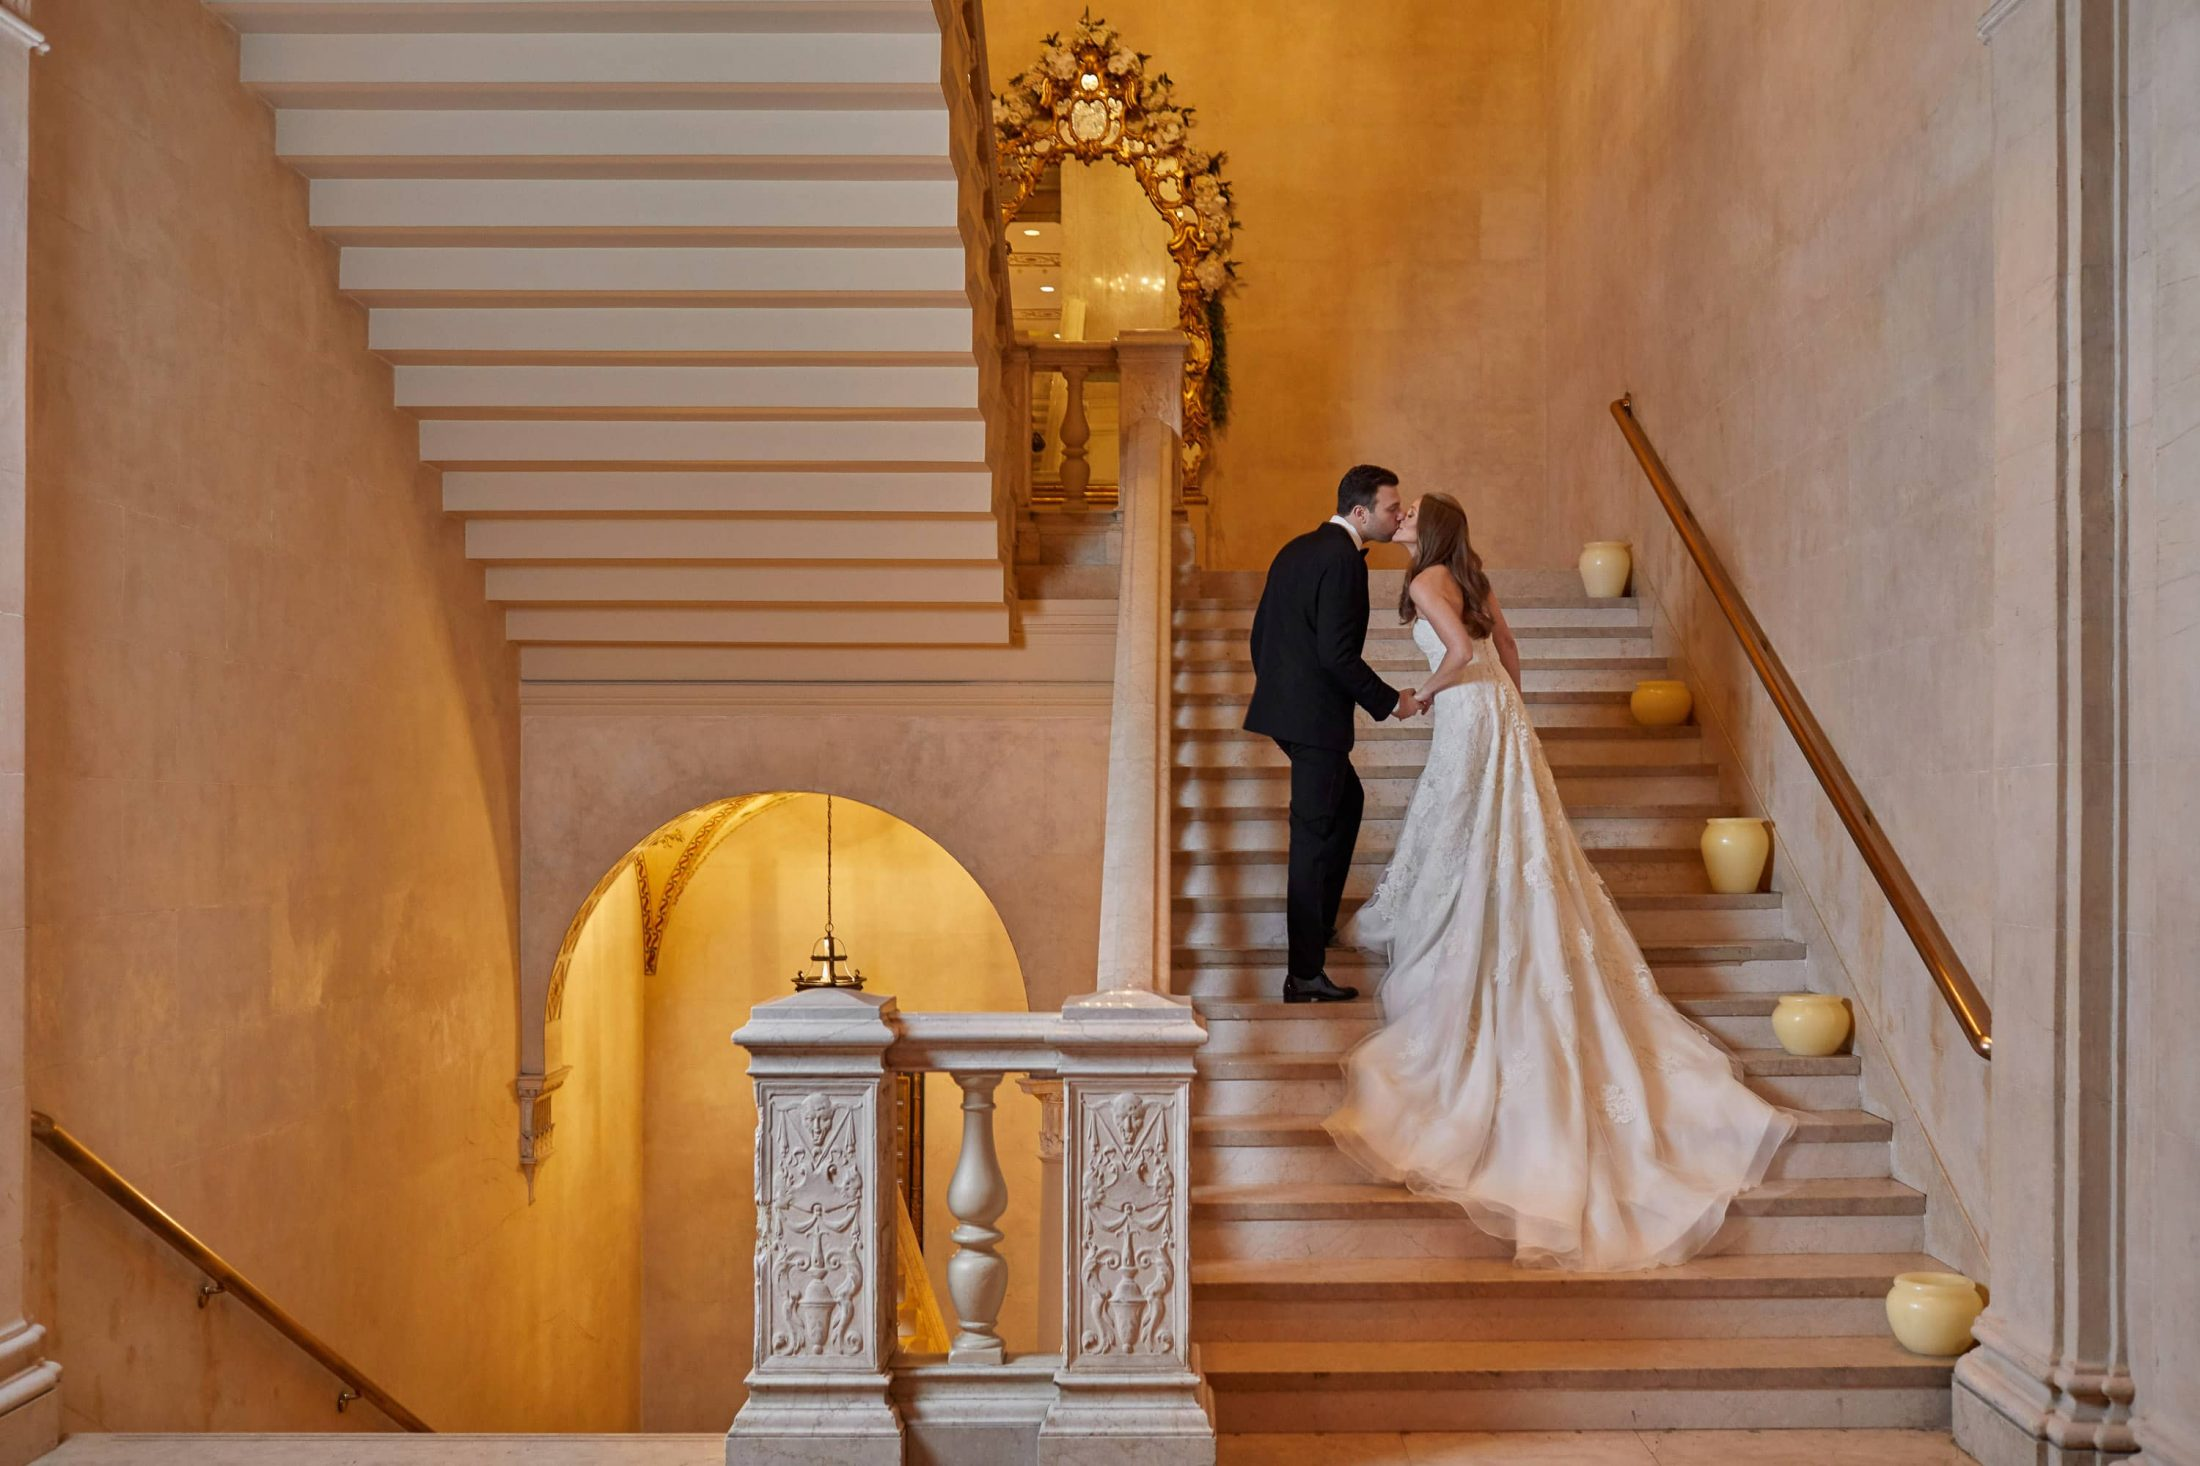 Bride and groom on the staircase at this classic autumn wedding at The Plaza in NYC | Photo by Christian Oth Studio